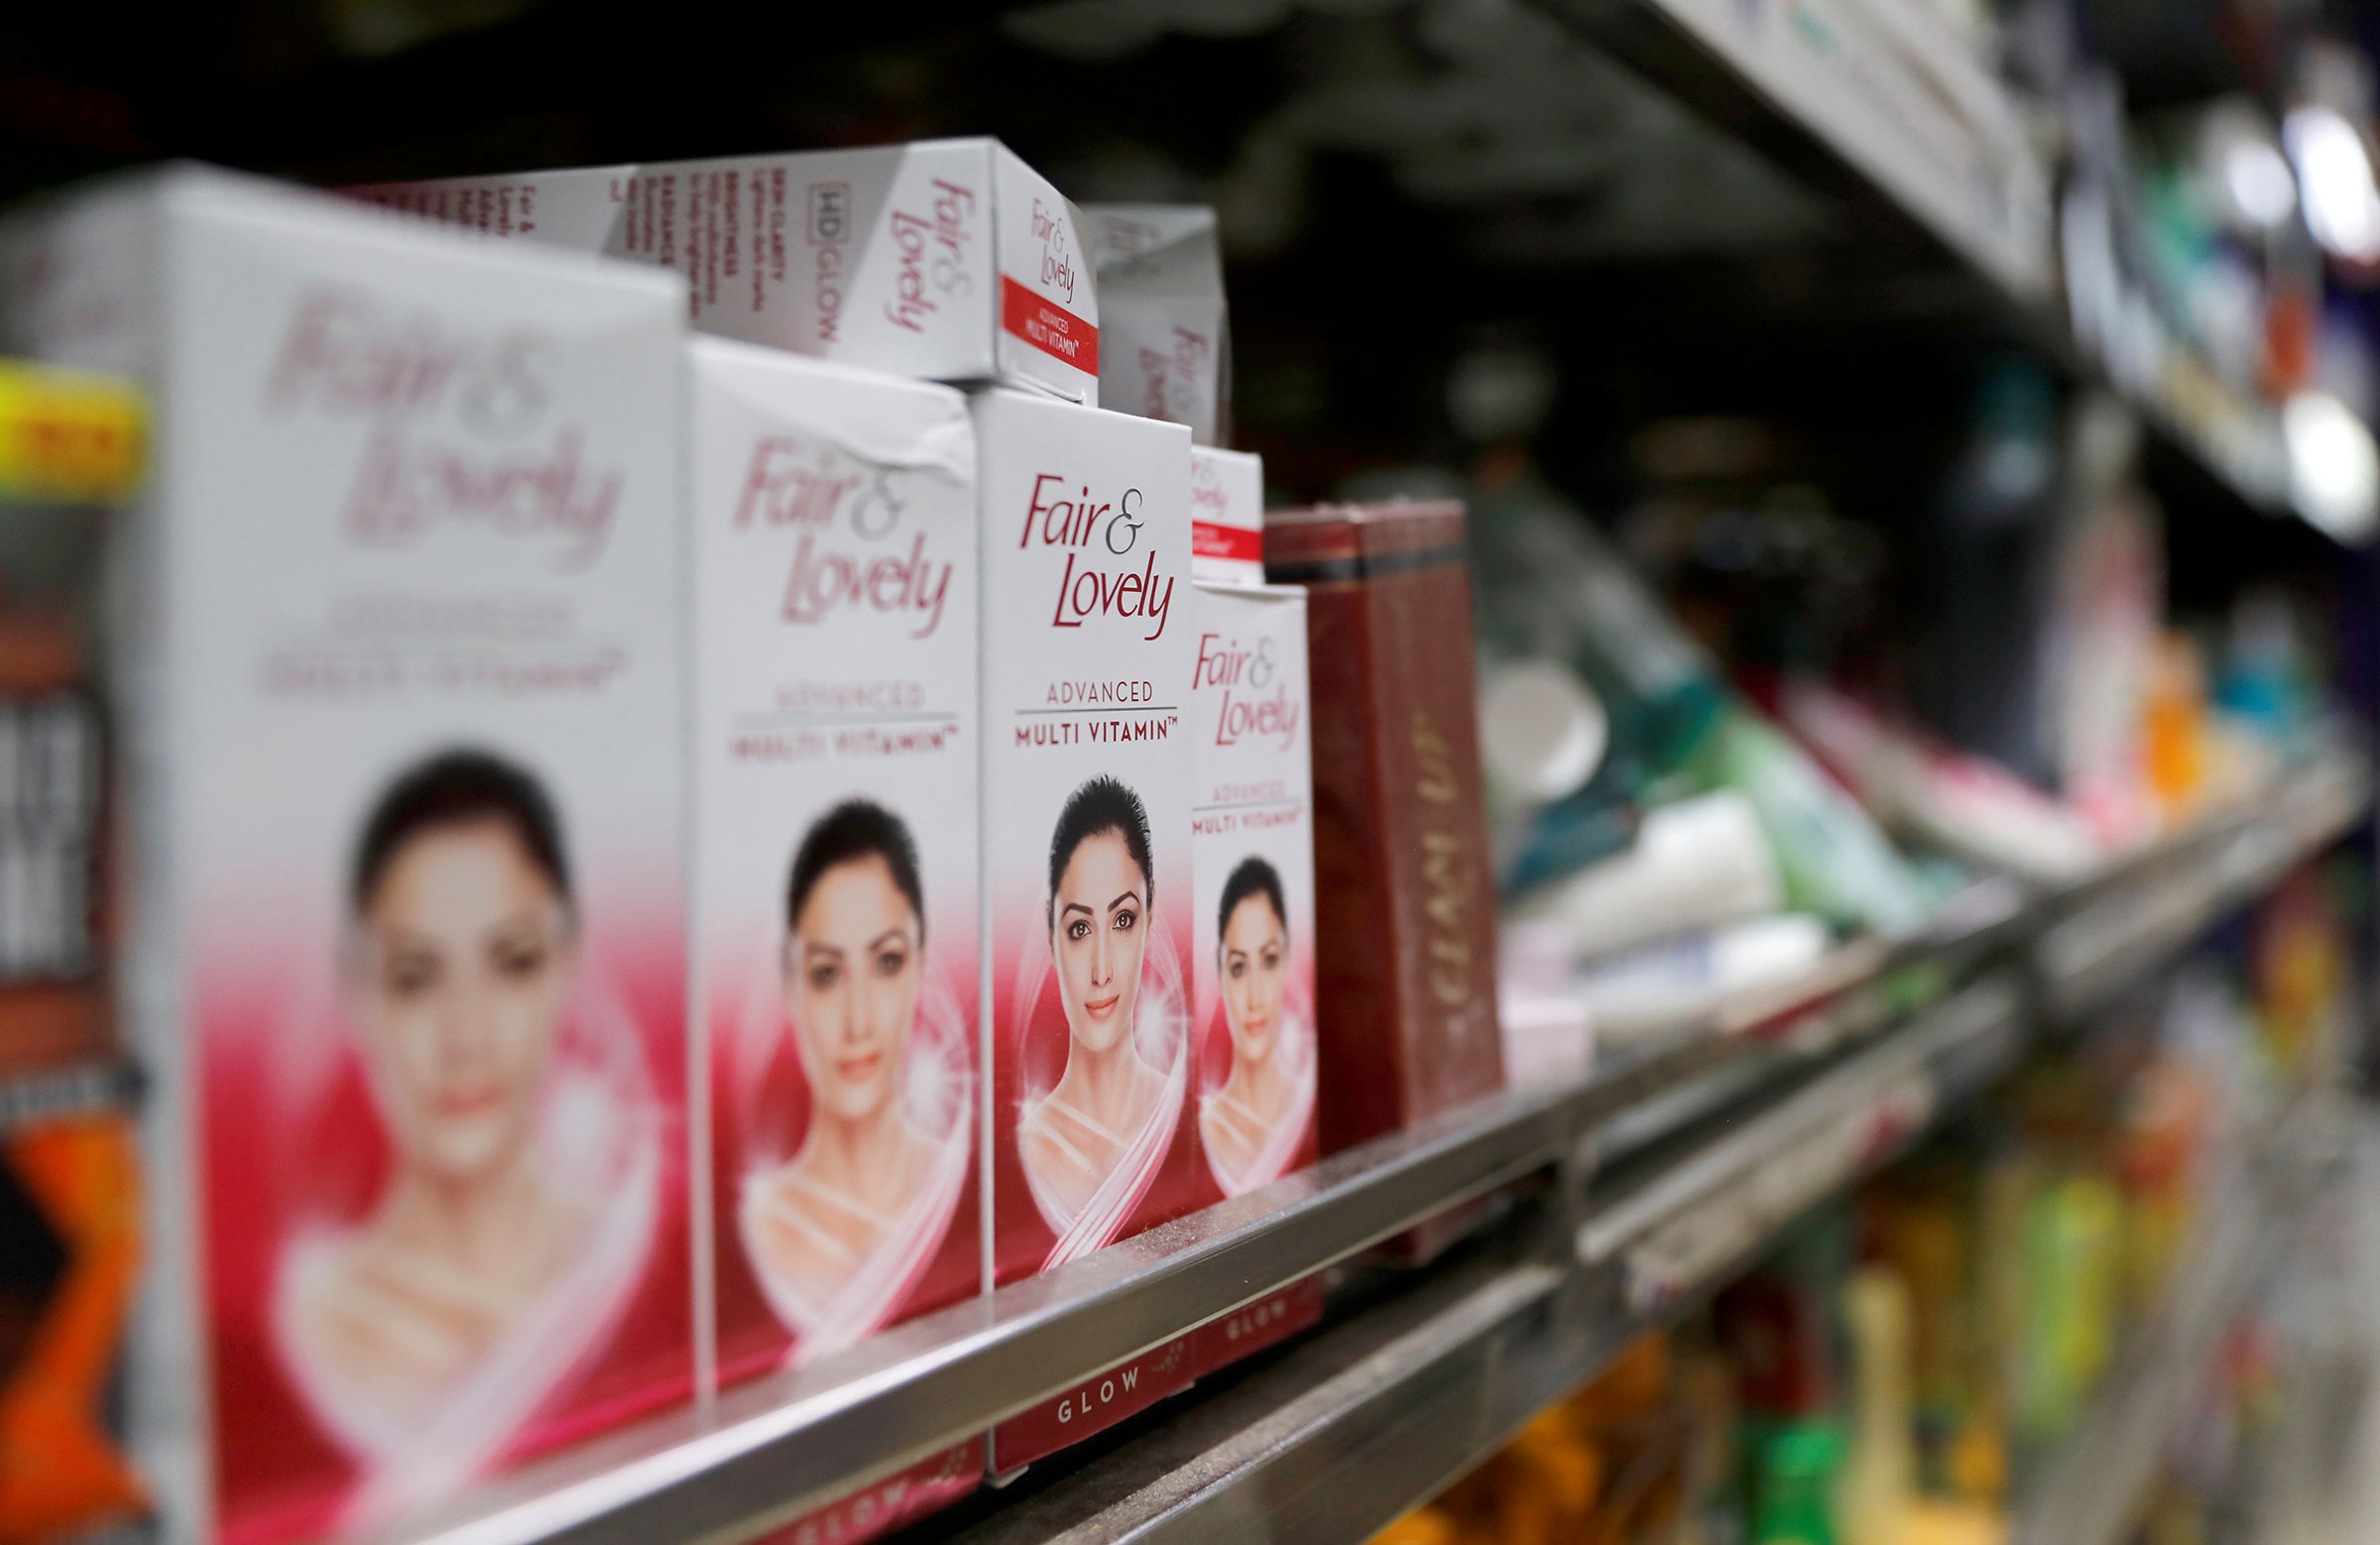 Unilever faced backlash for its  Fair & Lovely  skin-lightening cream as more activists began speaking up against the prevalence of colorism in Indian culture.